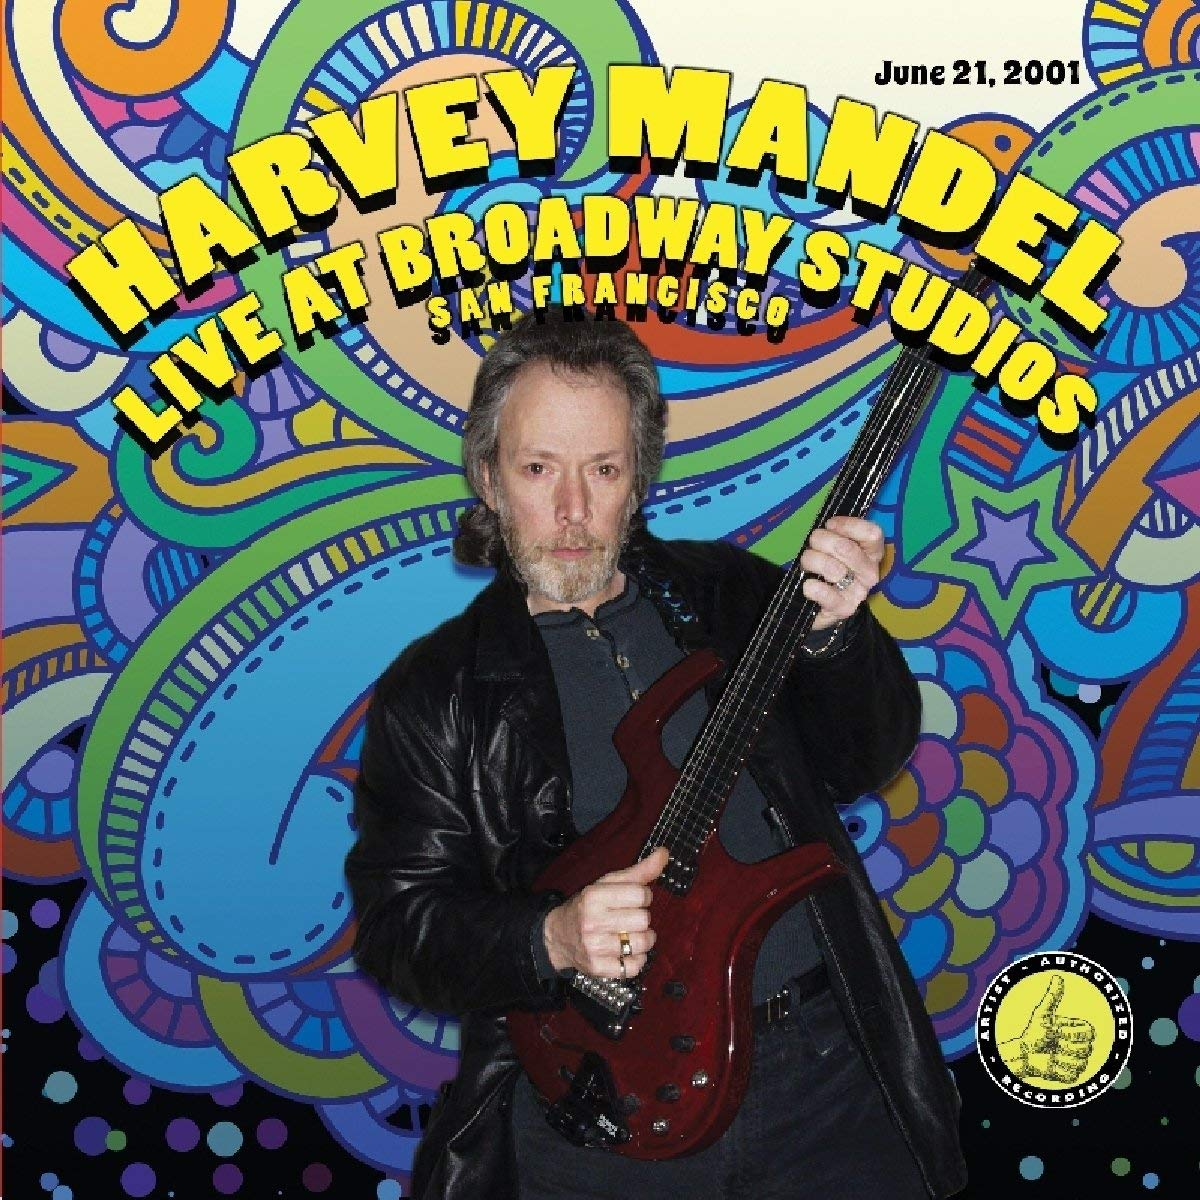 Harvey Mandel — Live at Broadway Studios, San Francisco 2001